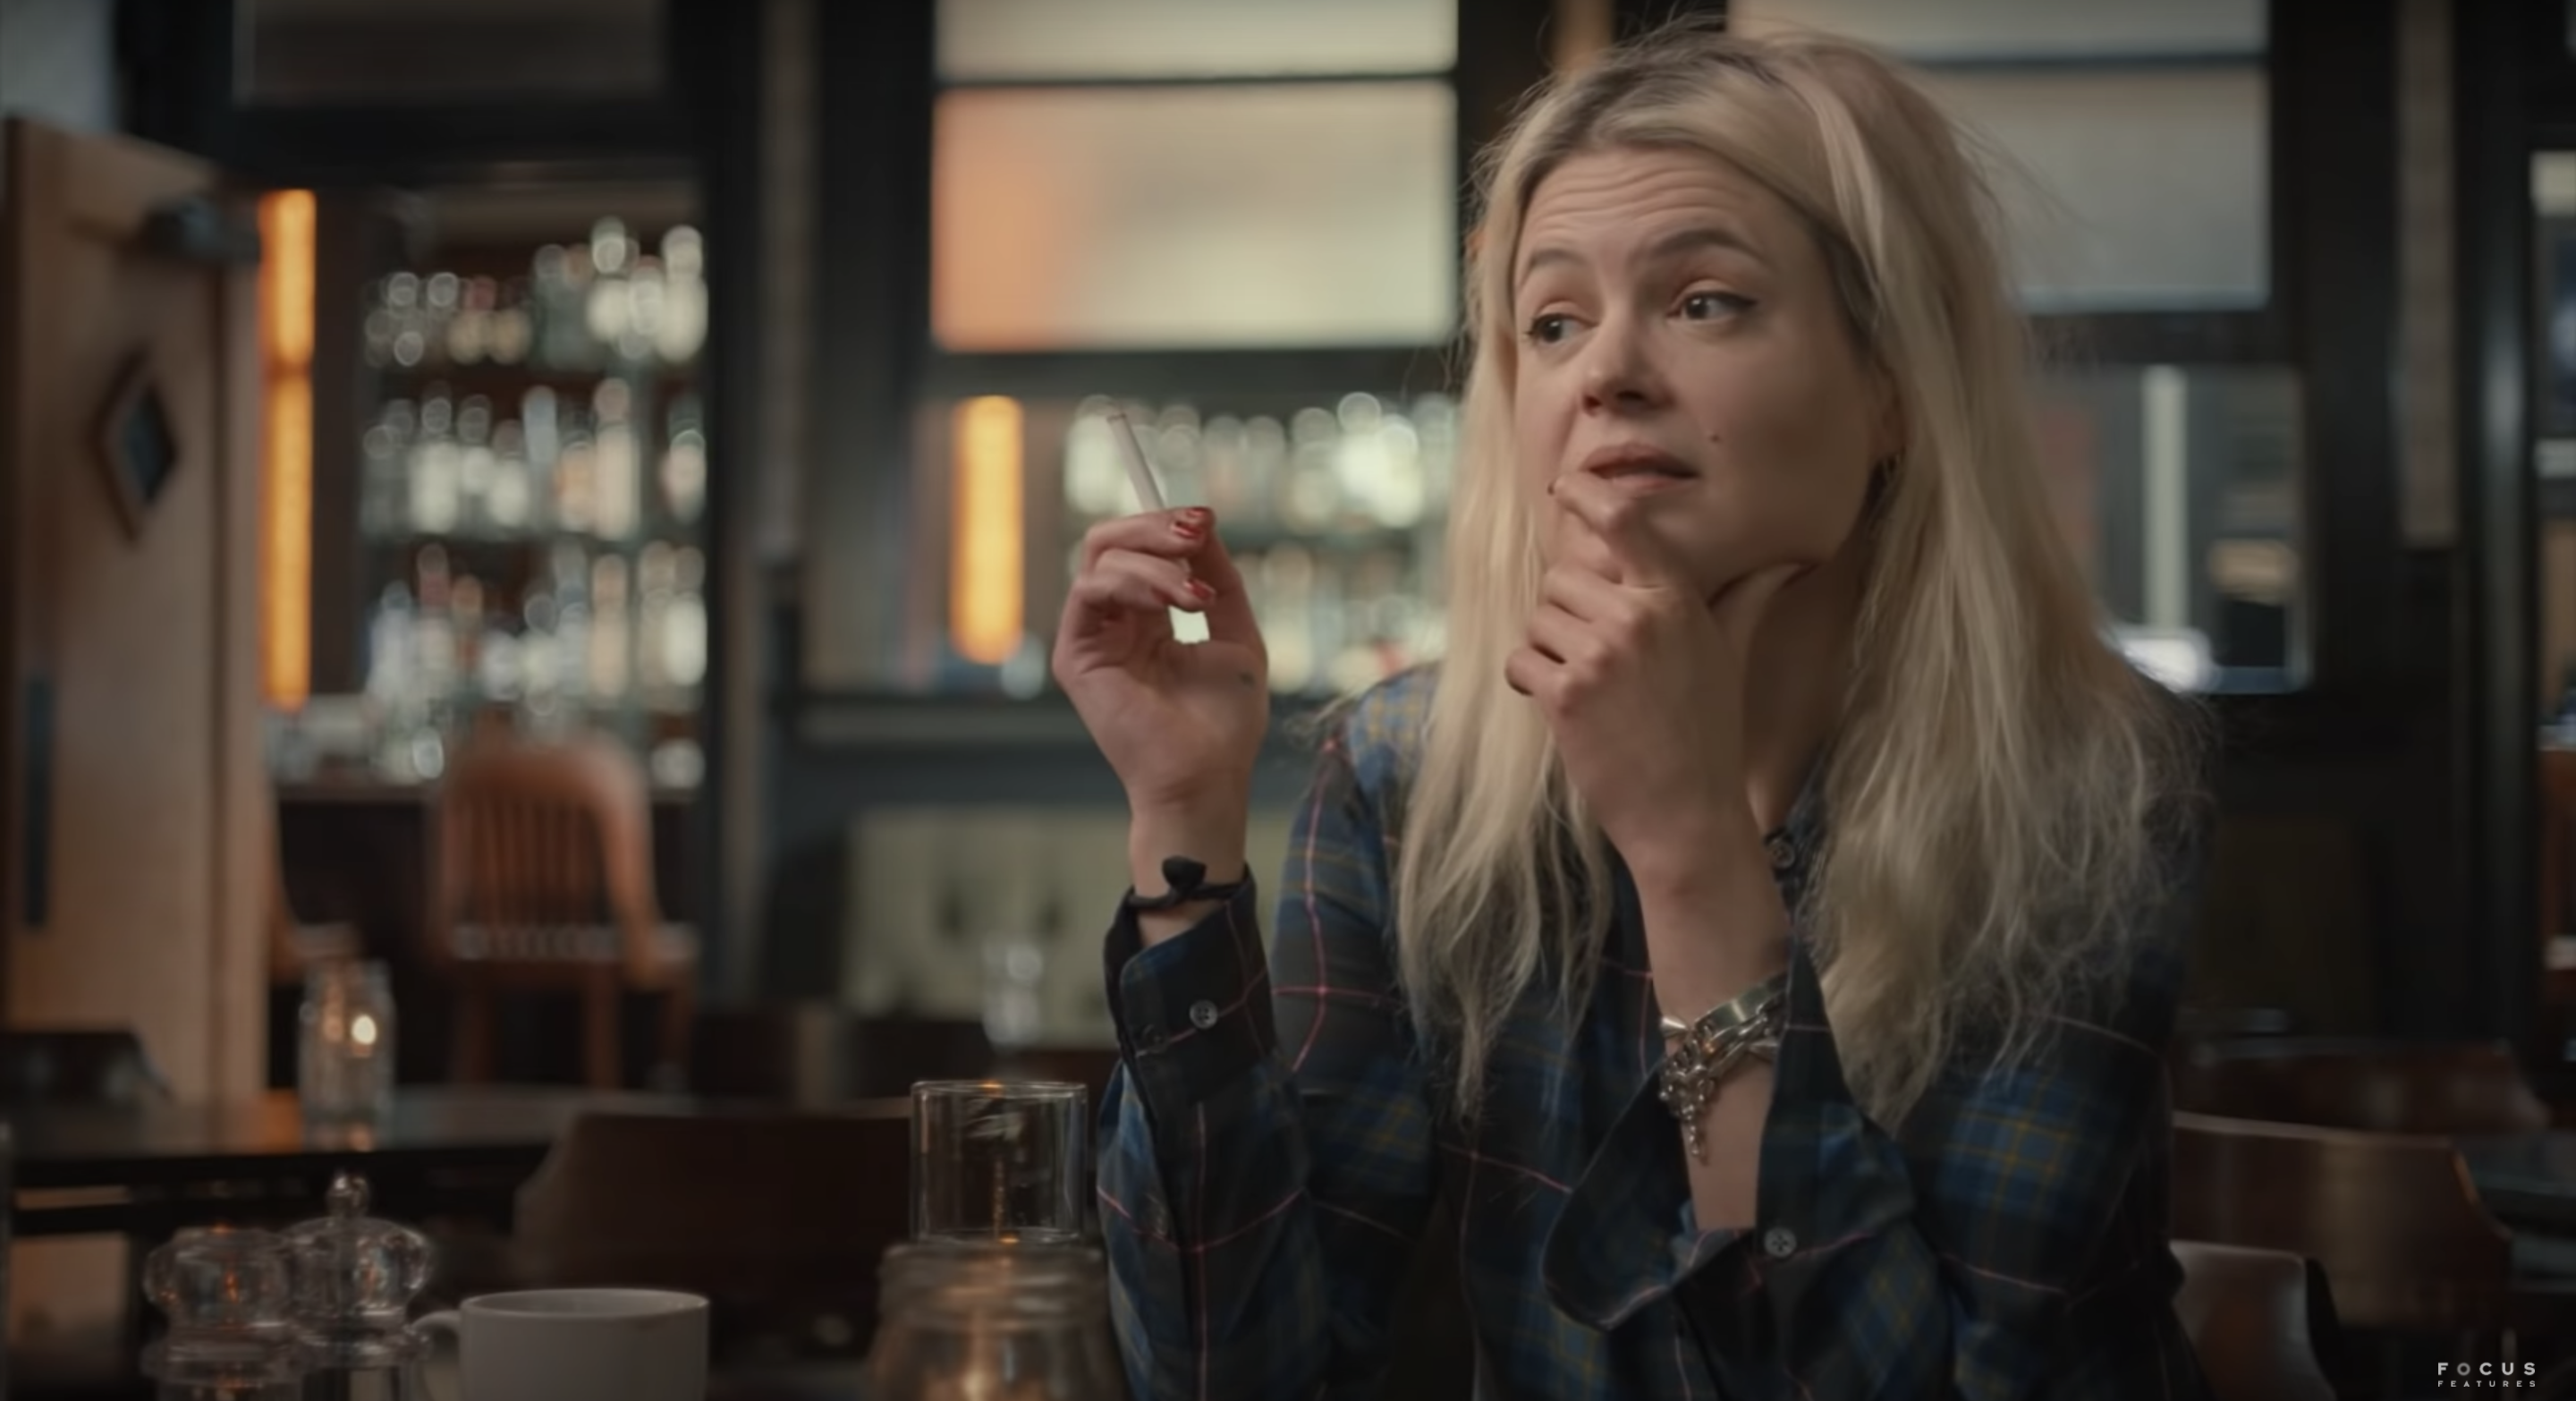 The Kills singer Alison Mosshart sits in a bar, cigarette in hand, pondering her friend Anthony Bourdain